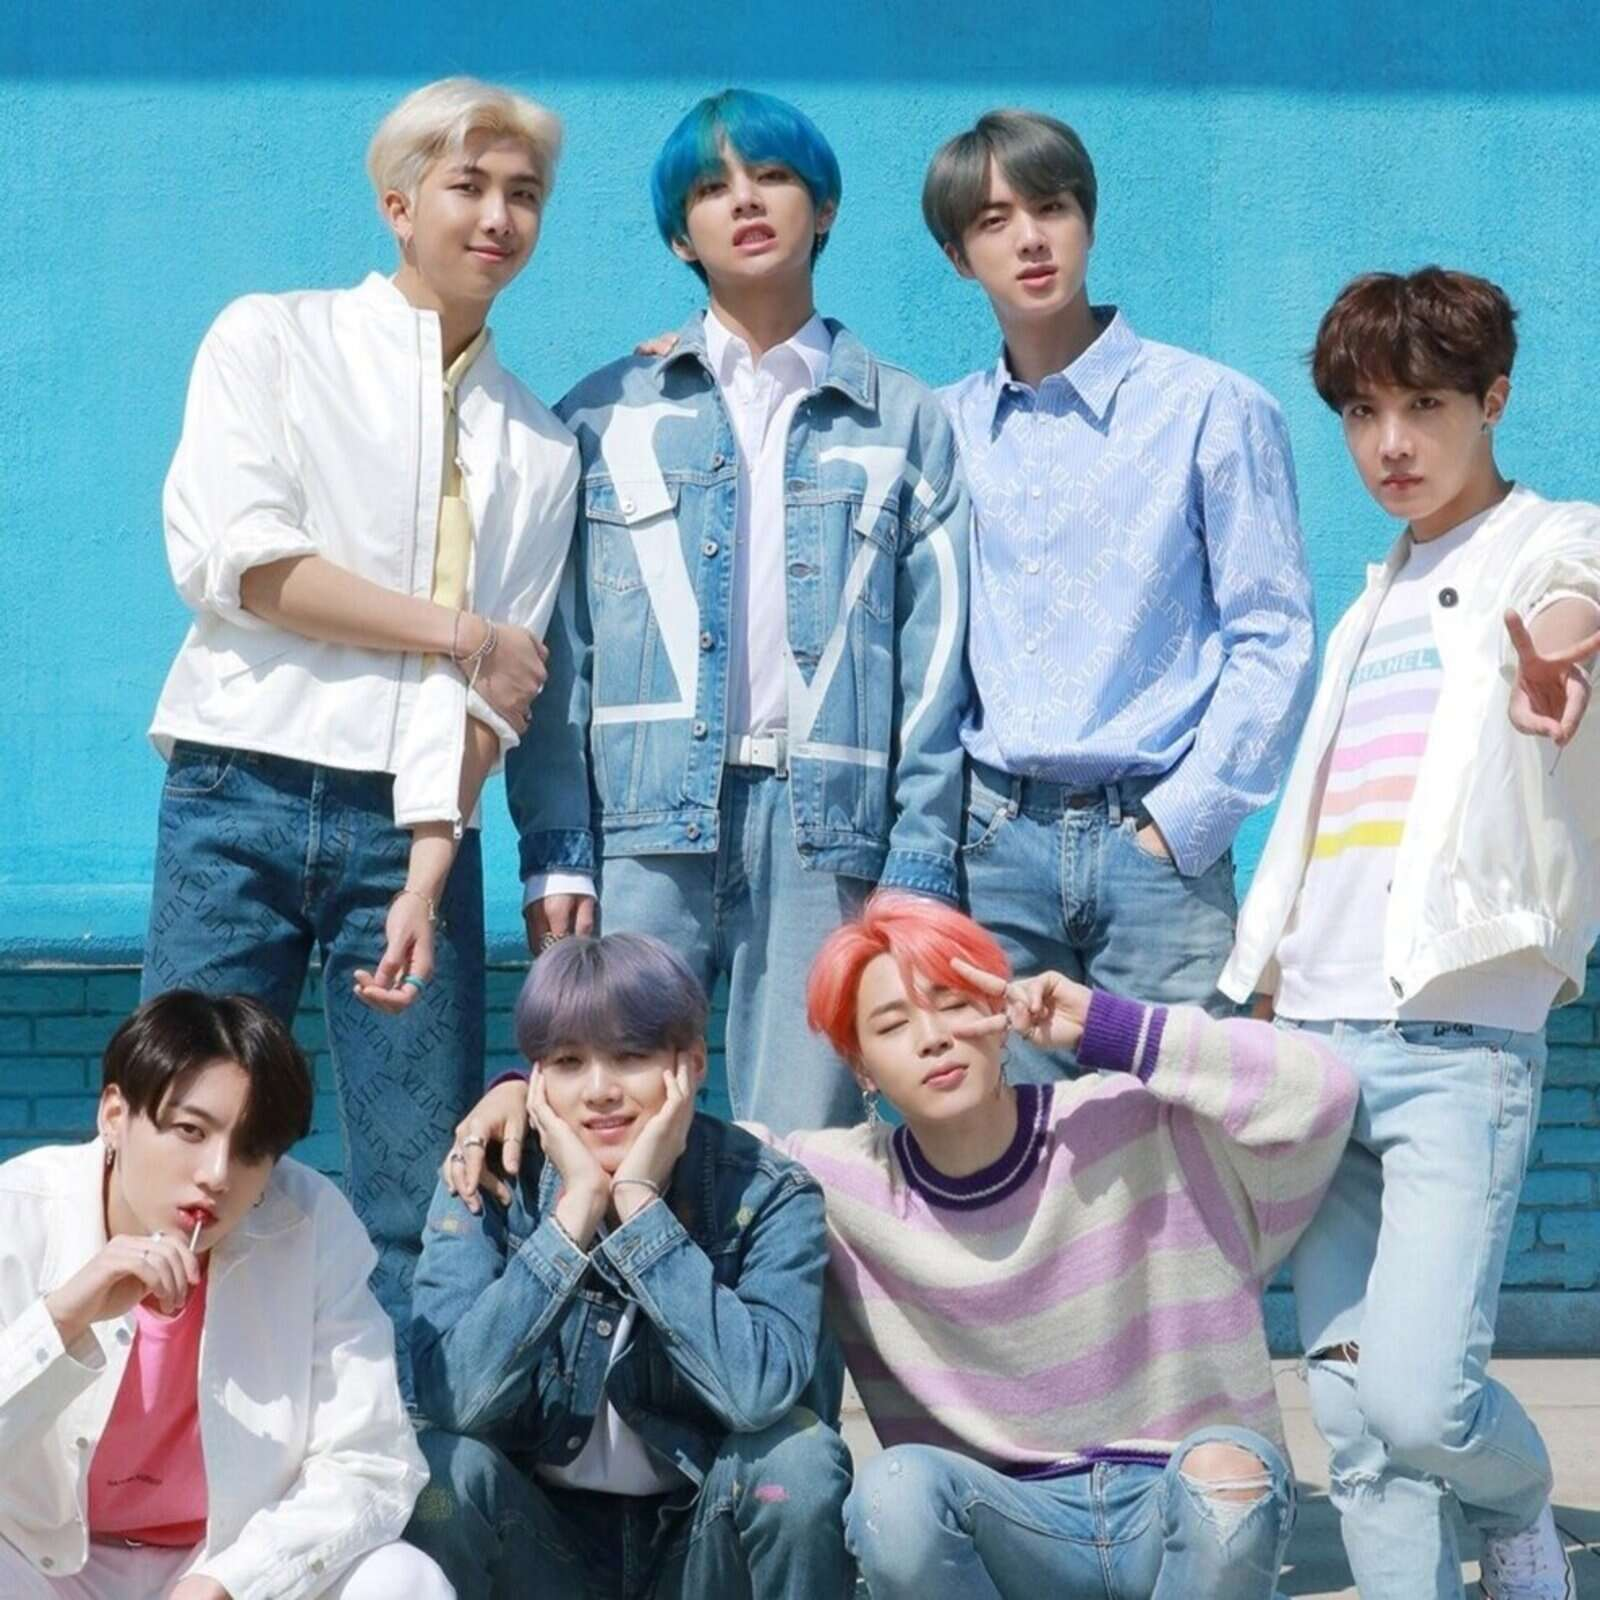 It feels like 2020 has been the year of BTS as the band has blown up exponentially. We tried to figure out what inspired a surge in popularity.